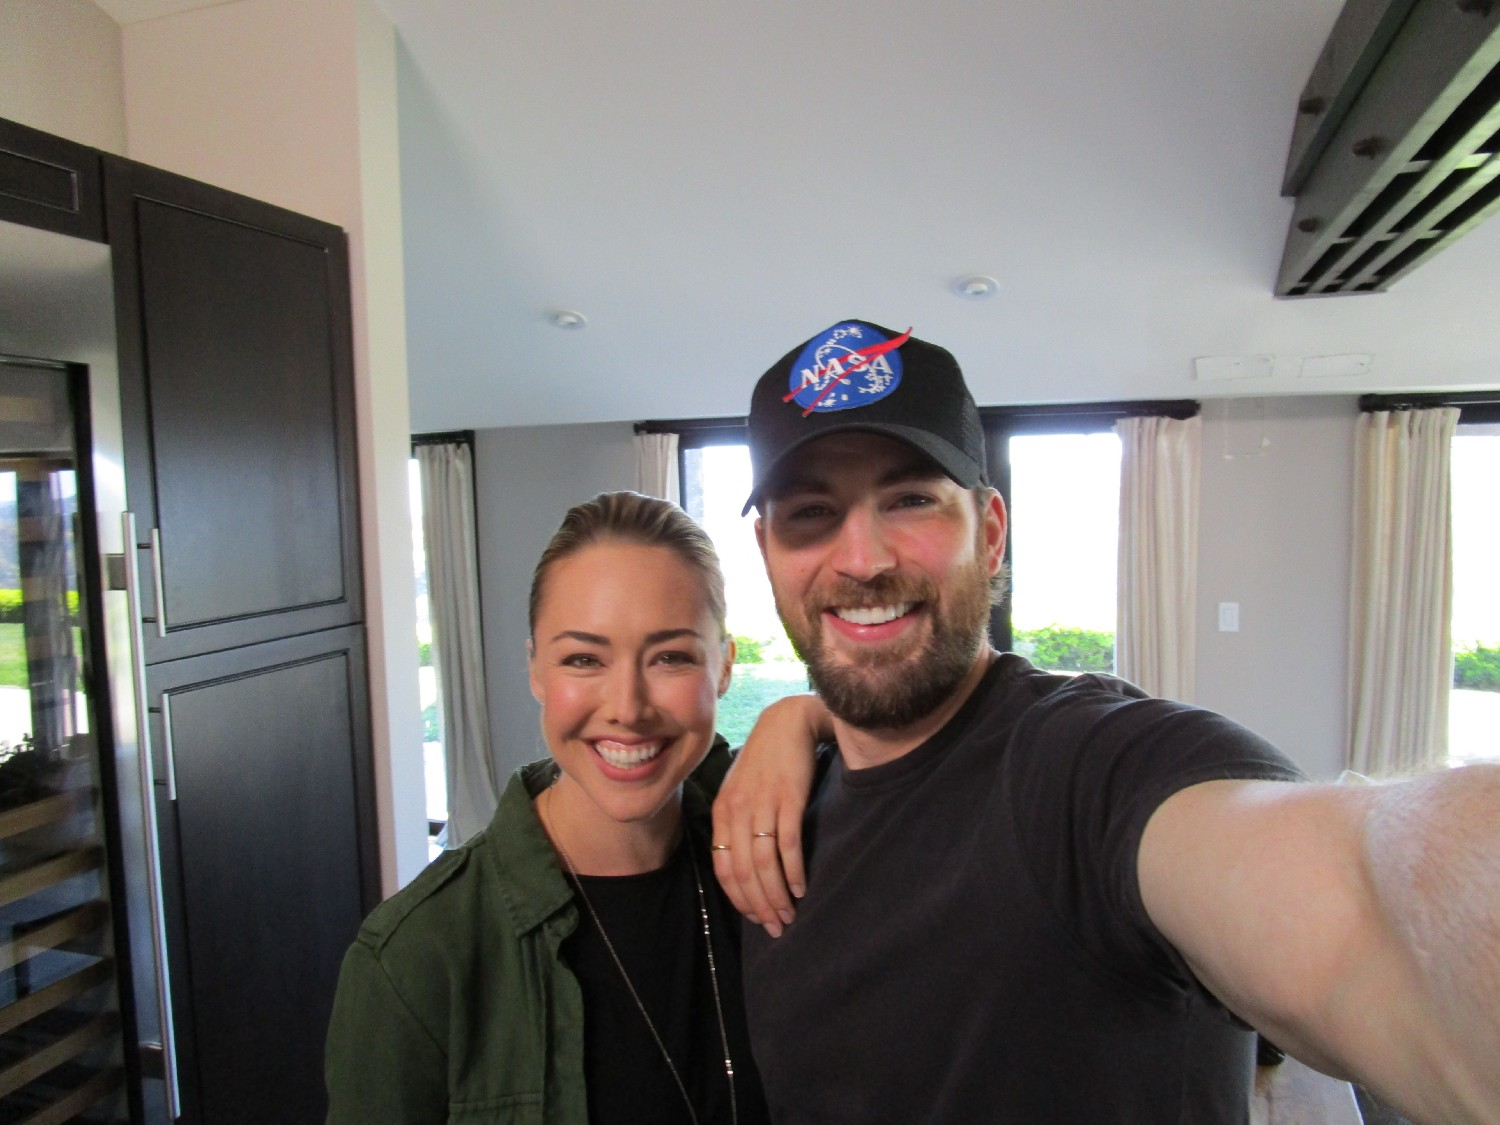 Lindsey Mckeon Gets Up Close Personal With Chris Evans Последние твиты от lindsey mckeon (@mylindseymckeon). lindsey mckeon gets up close personal